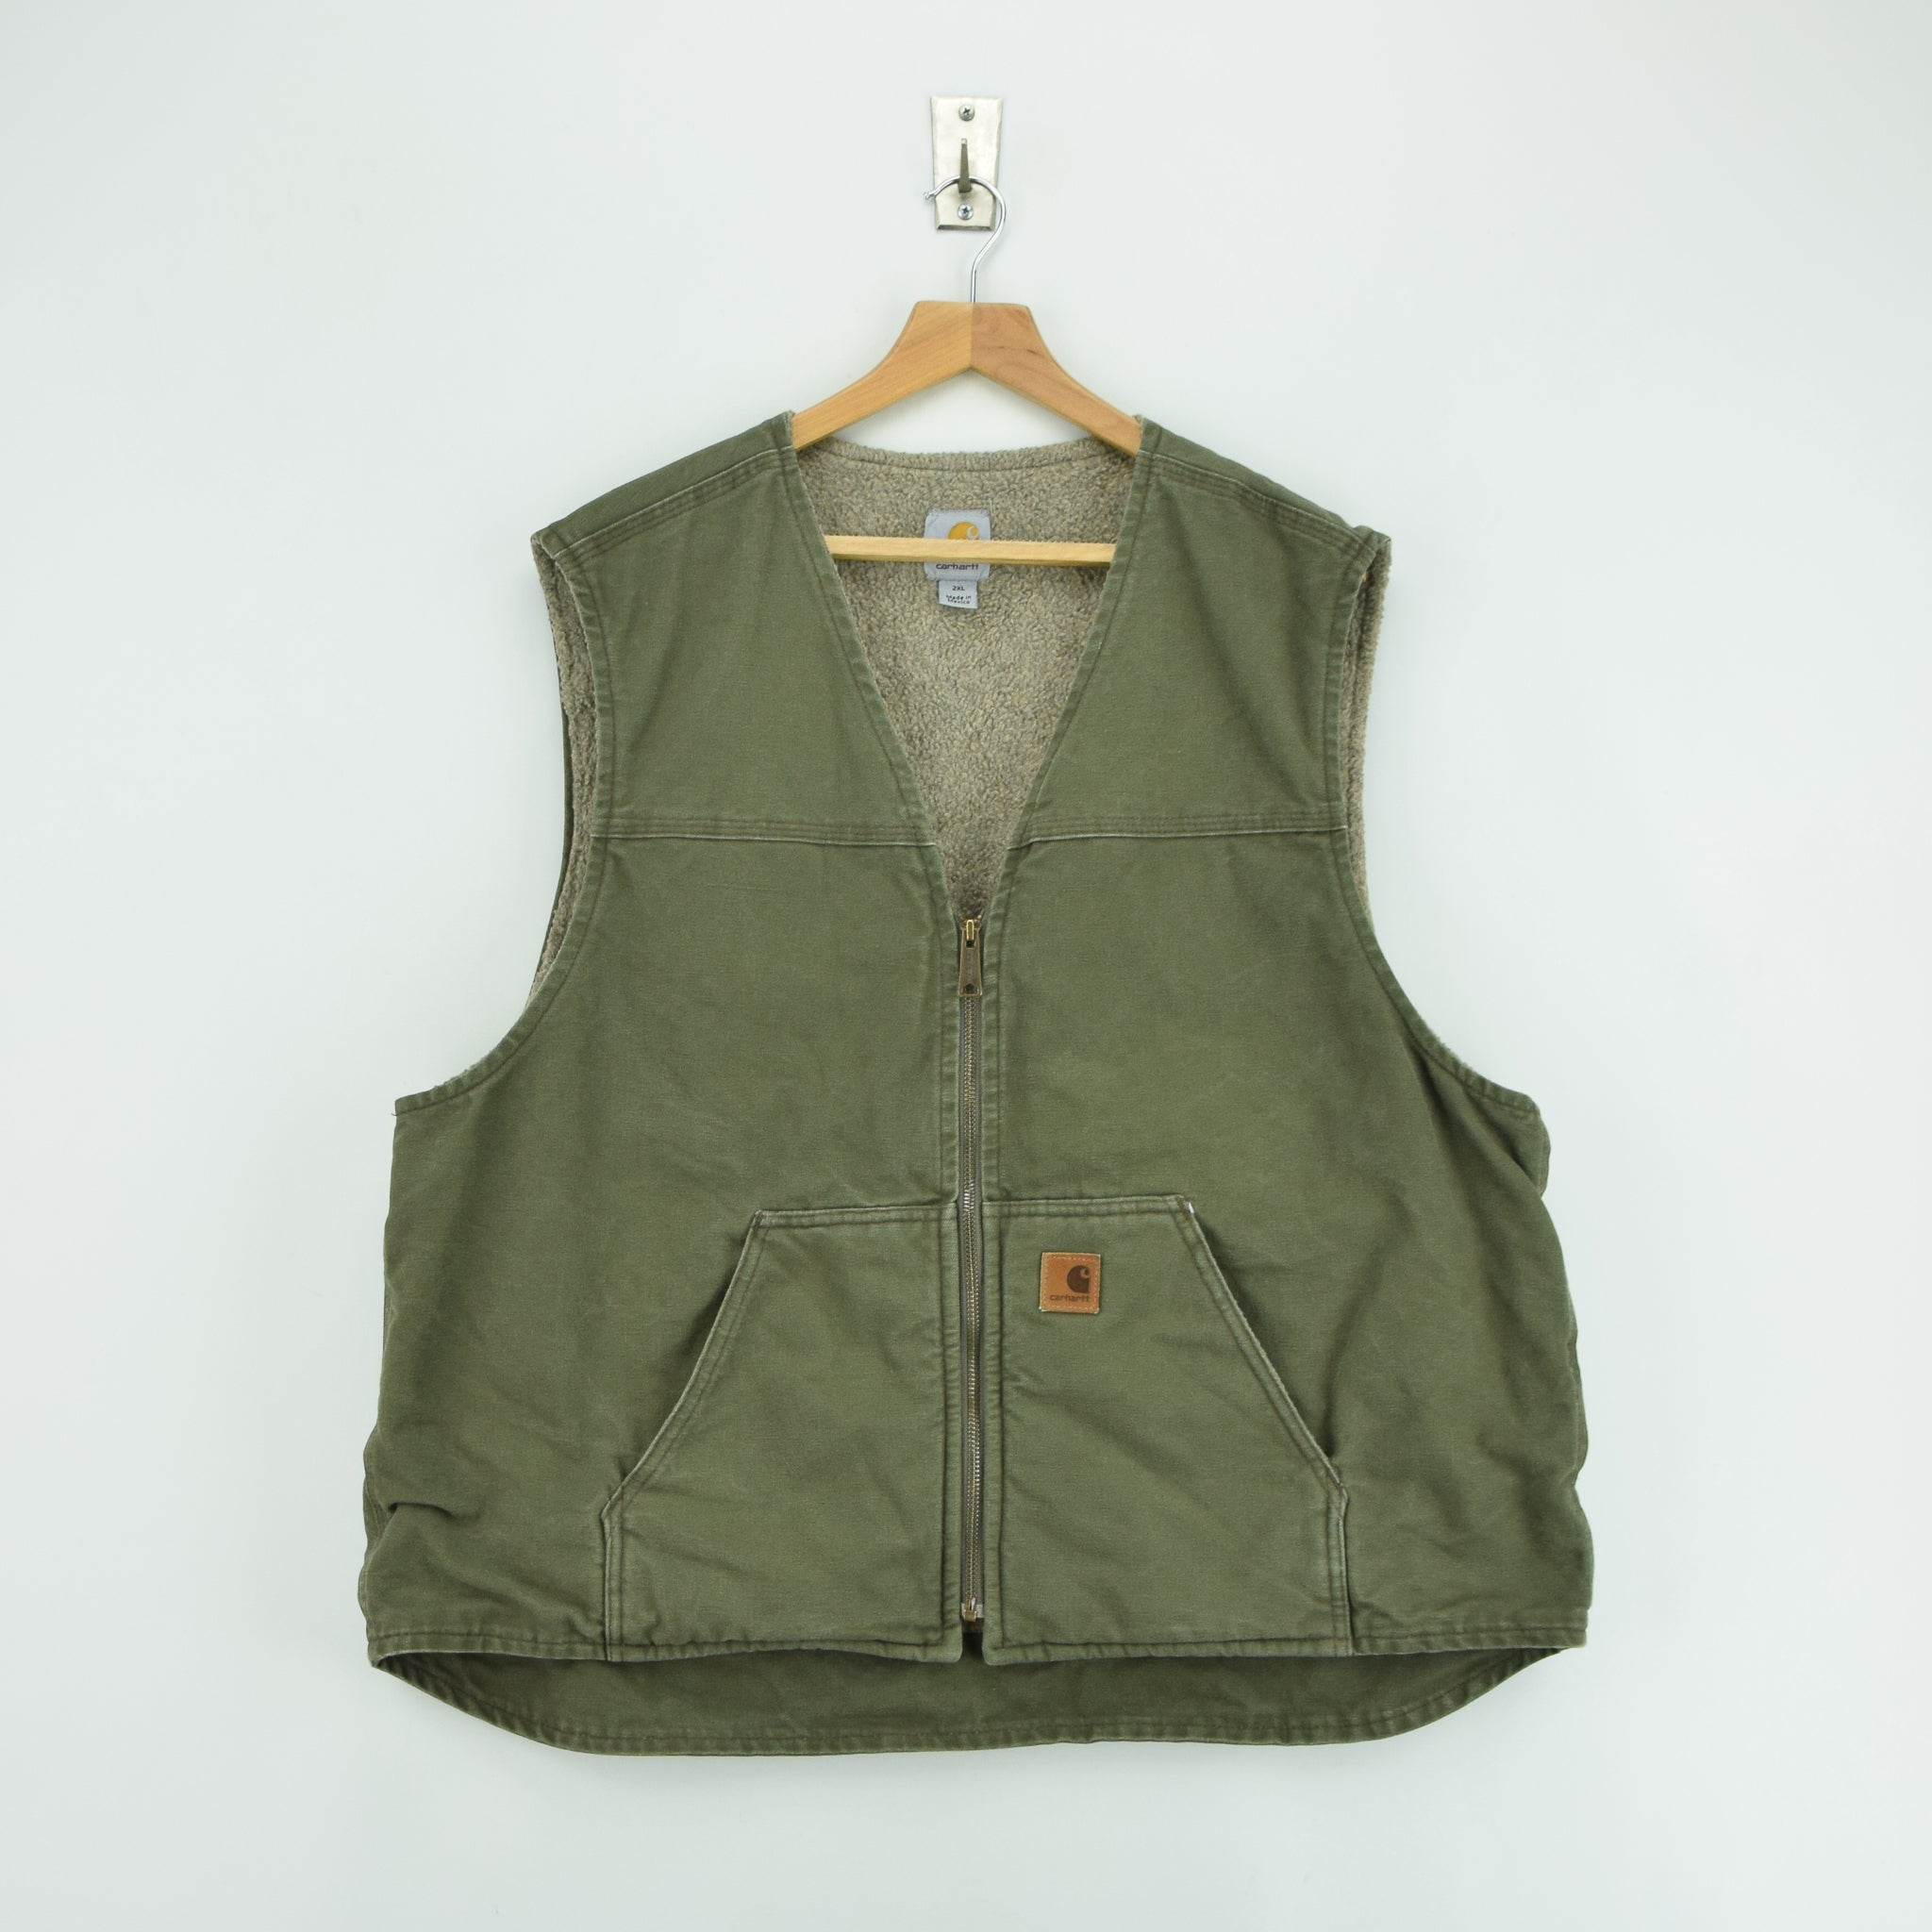 Vintage Carhartt Green Gilet Duck Canvas Cotton Waistcoat Vest Sherpa Lined XXL front